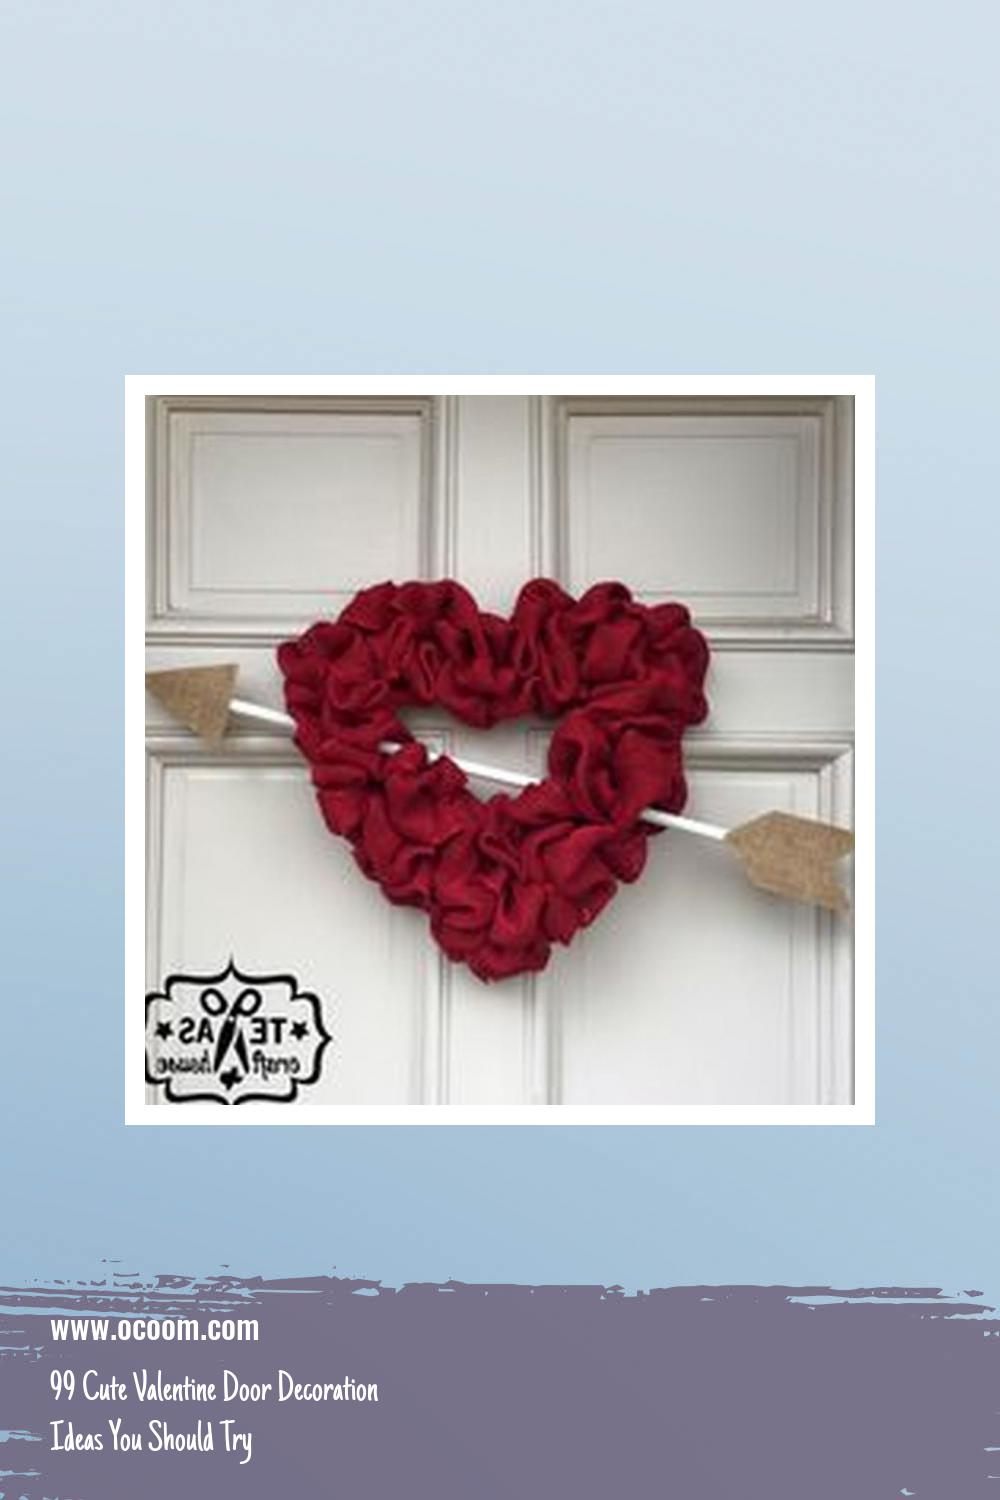 99 Cute Valentine Door Decoration Ideas You Should Try 40